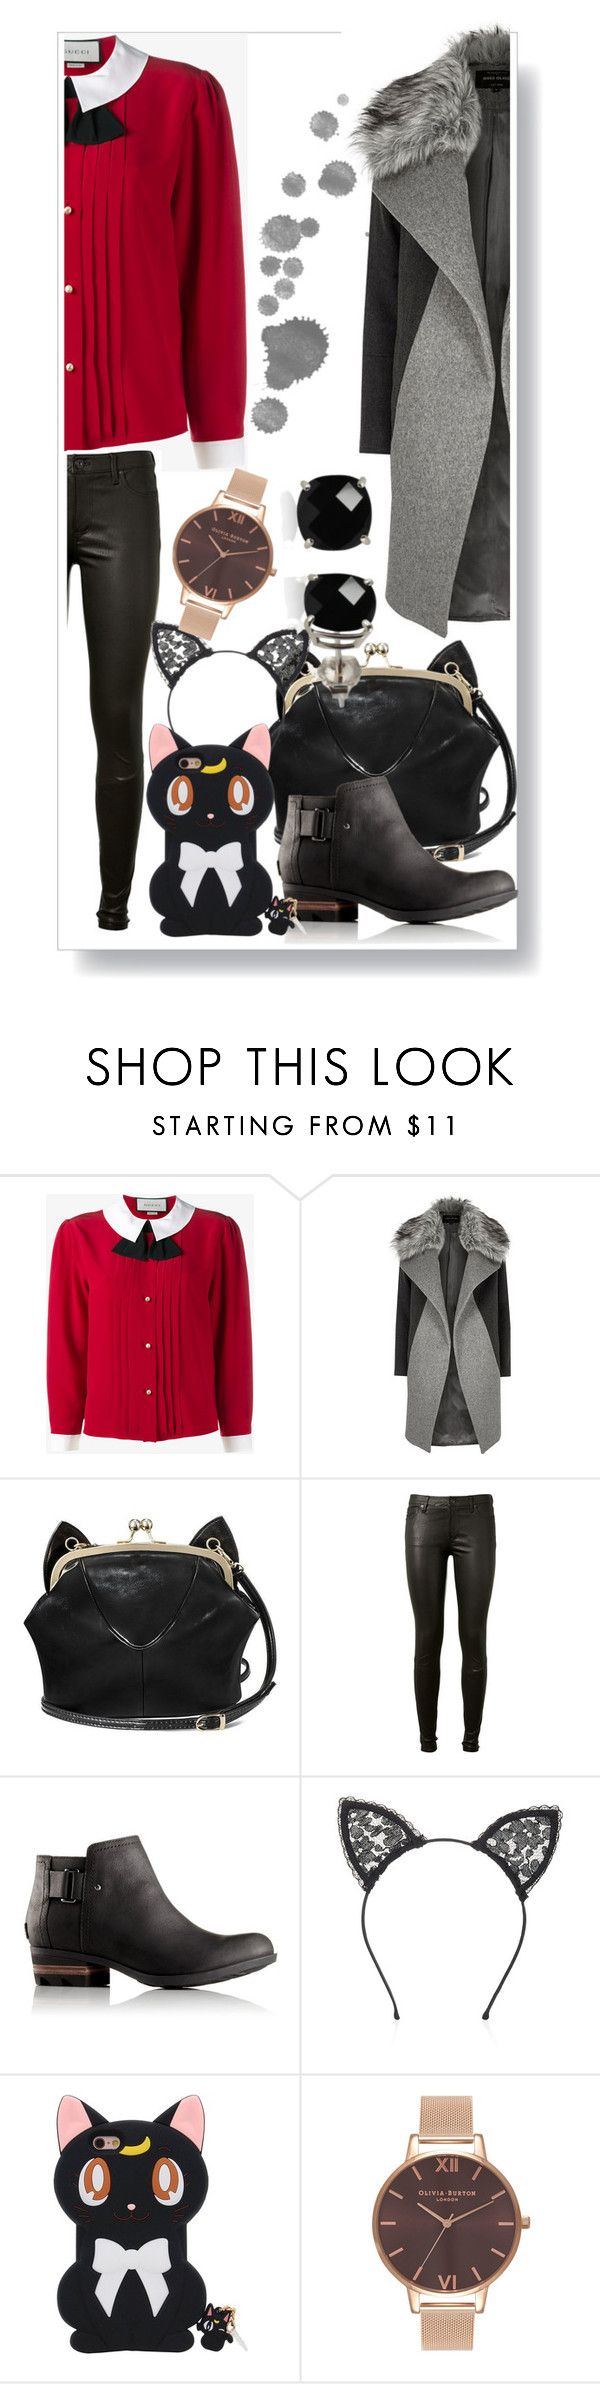 """work"" by frupapp on Polyvore featuring Gucci, River Island, AG Adriano Goldschmied, SOREL, Fleur du Mal, Olivia Burton, Belk & Co., StreetStyle, school and Work"